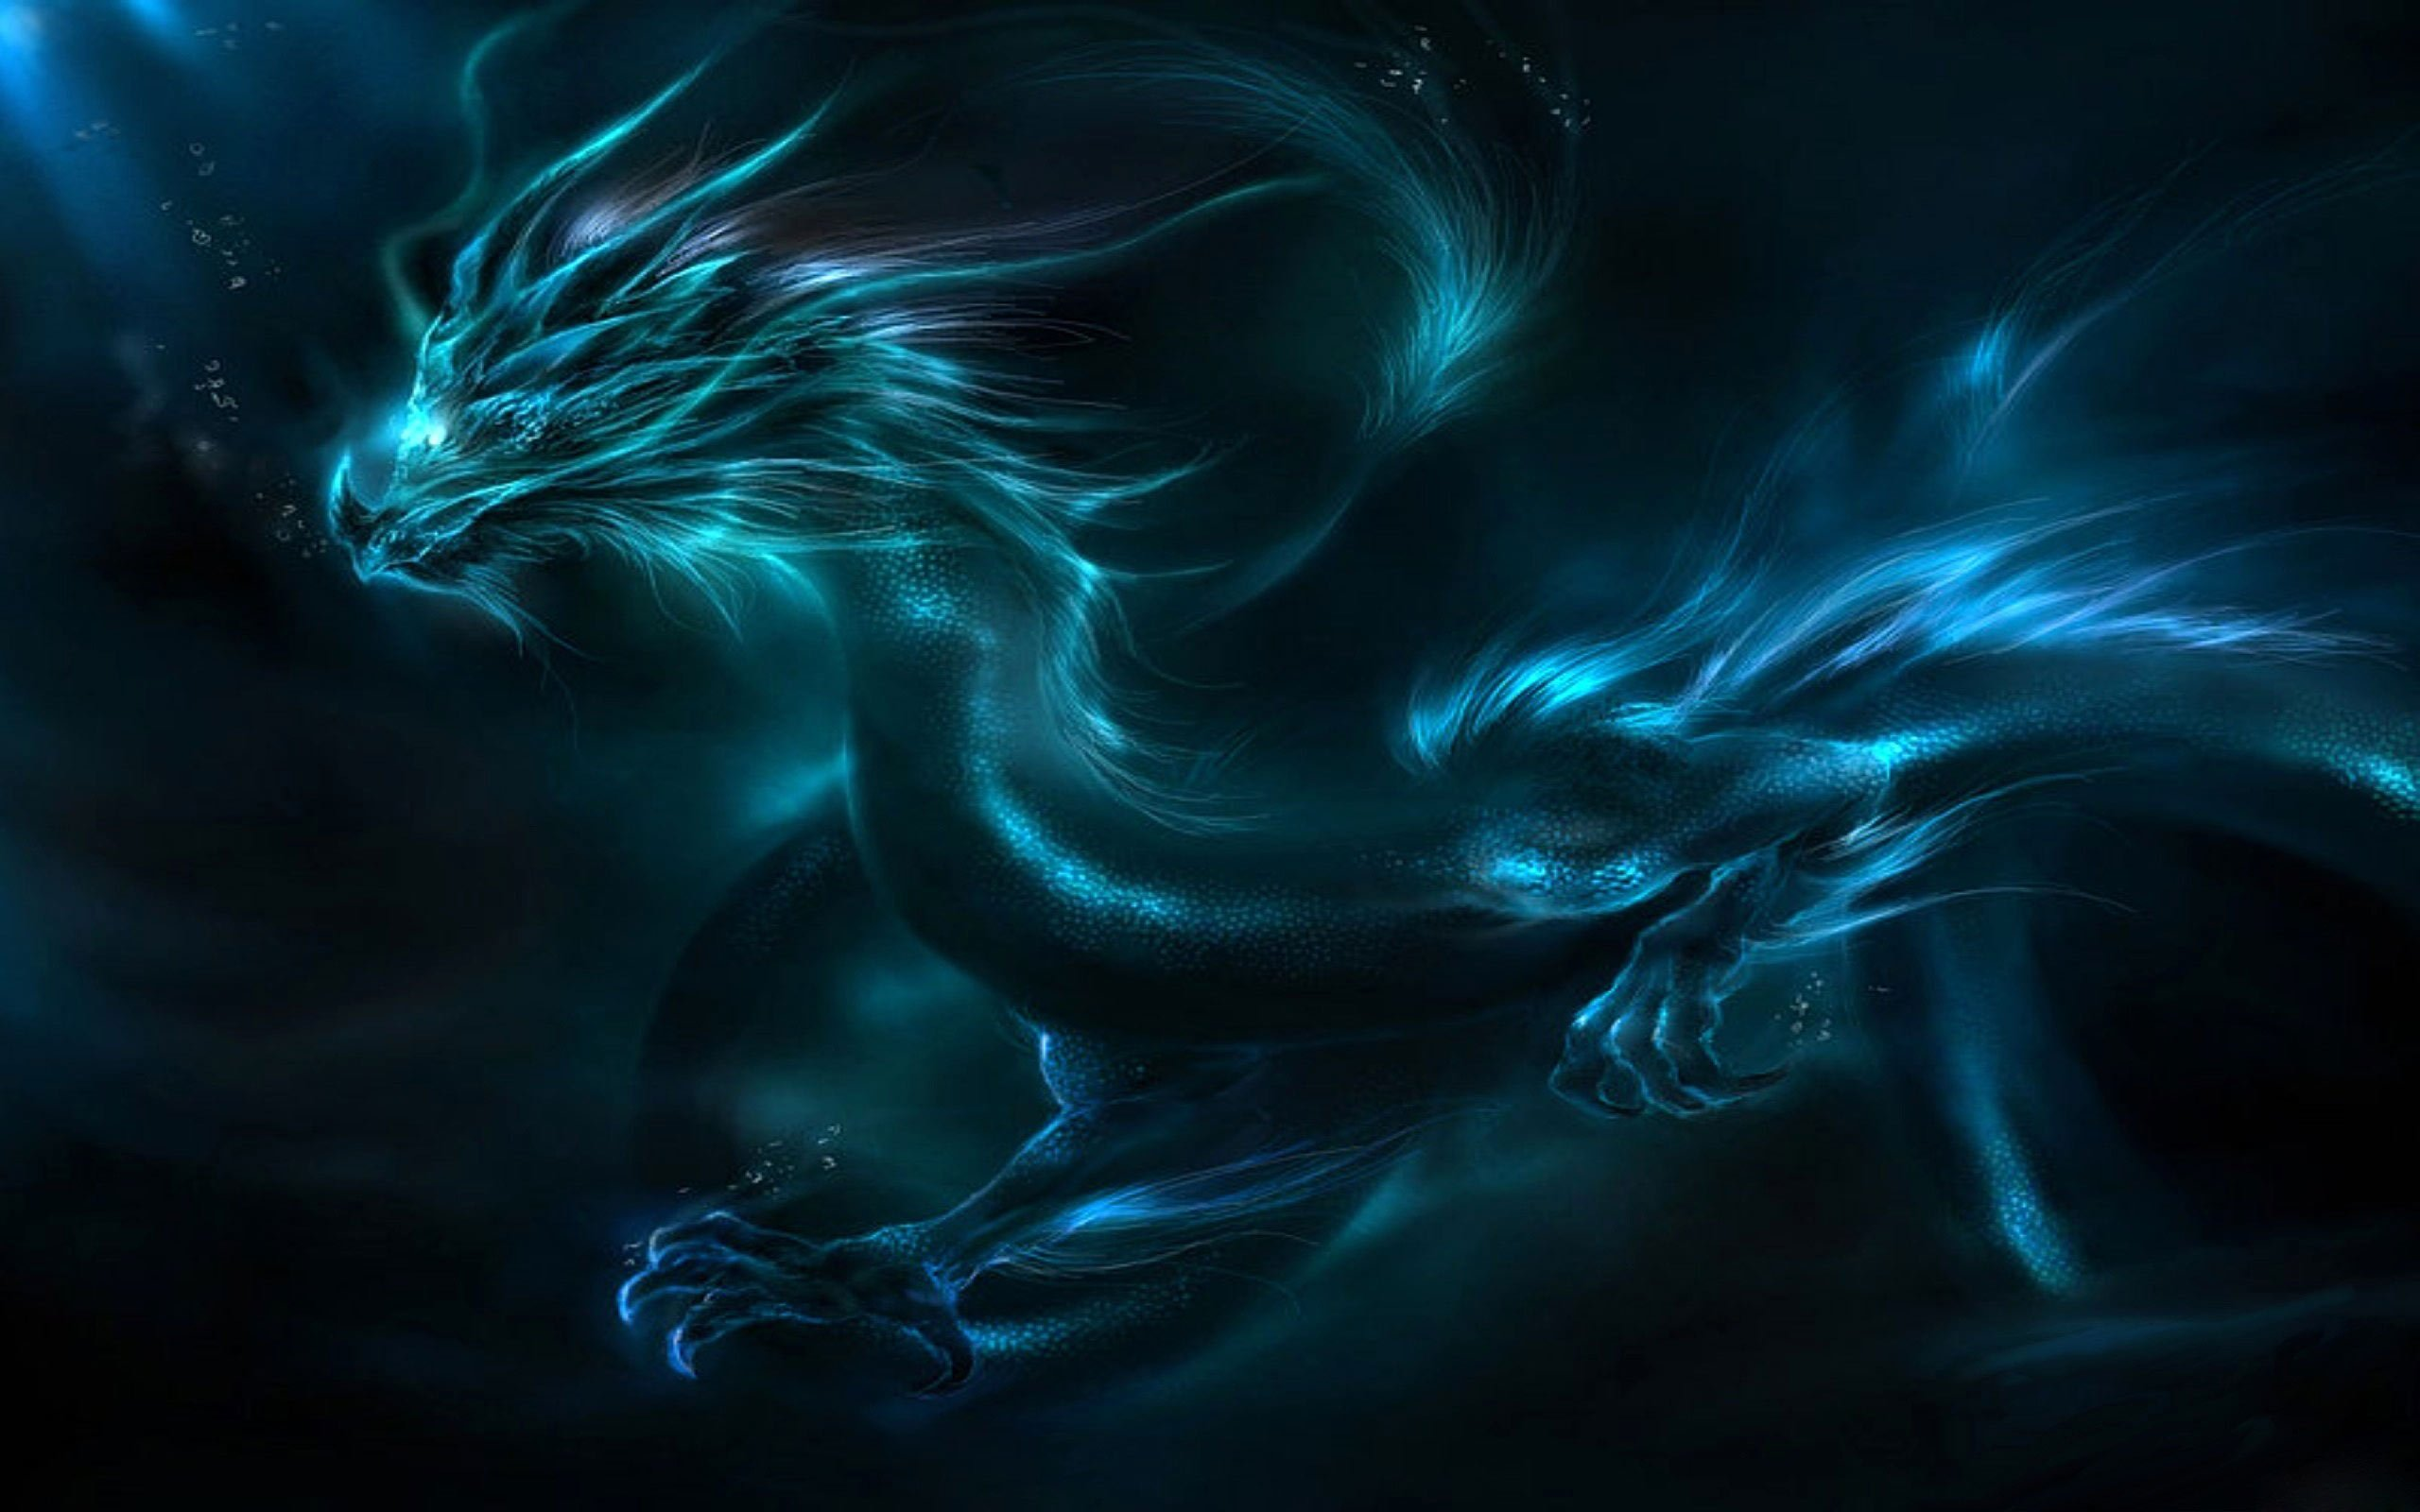 HD Dragon Wallpaper for computer With Resolutions 25601600 Pixel 2560x1600